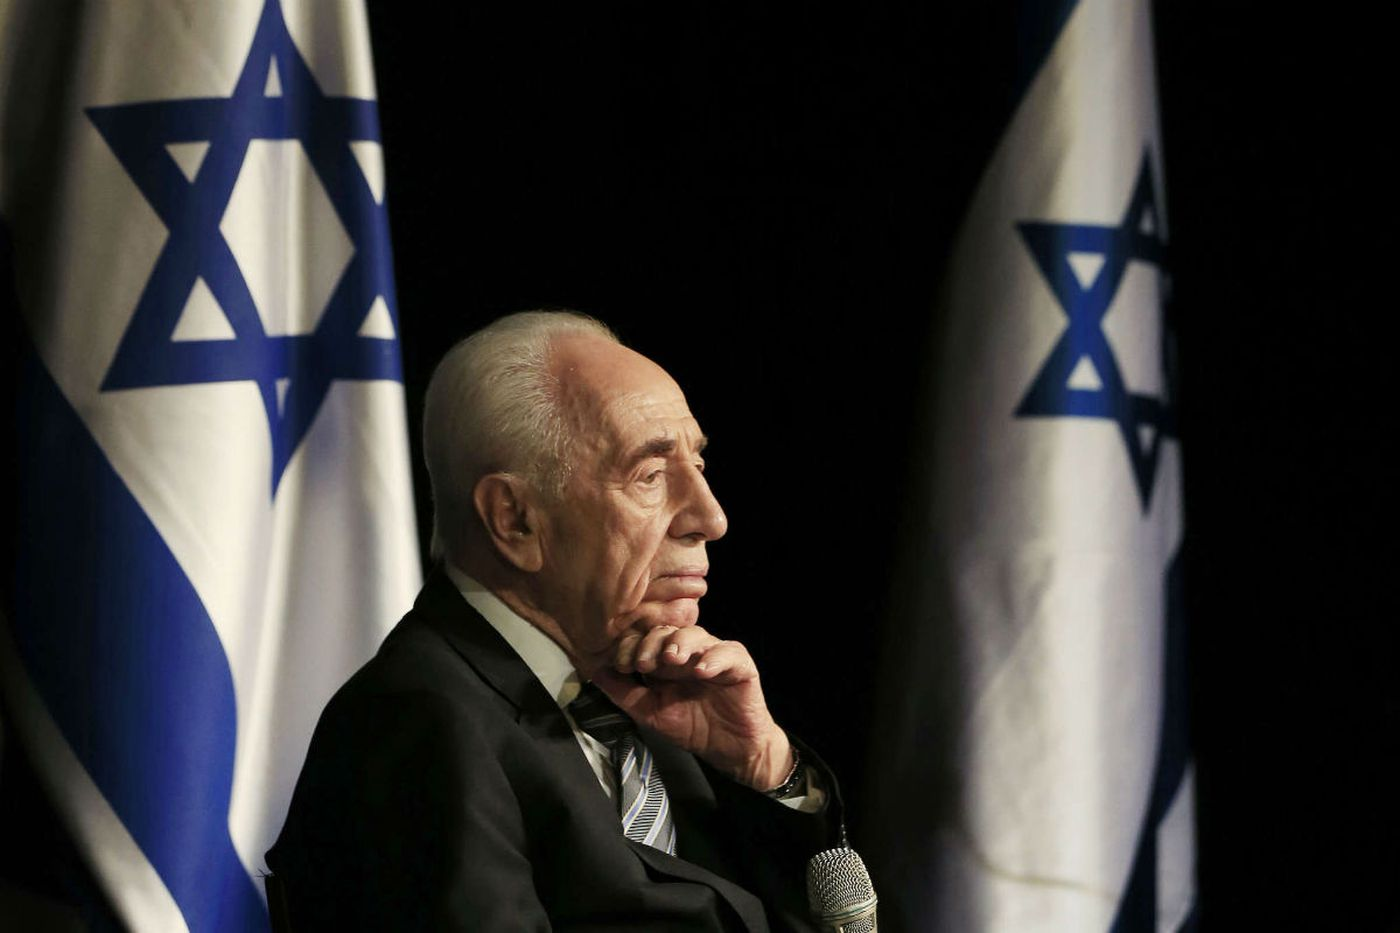 Worldview: How to build on Shimon Peres' dream?